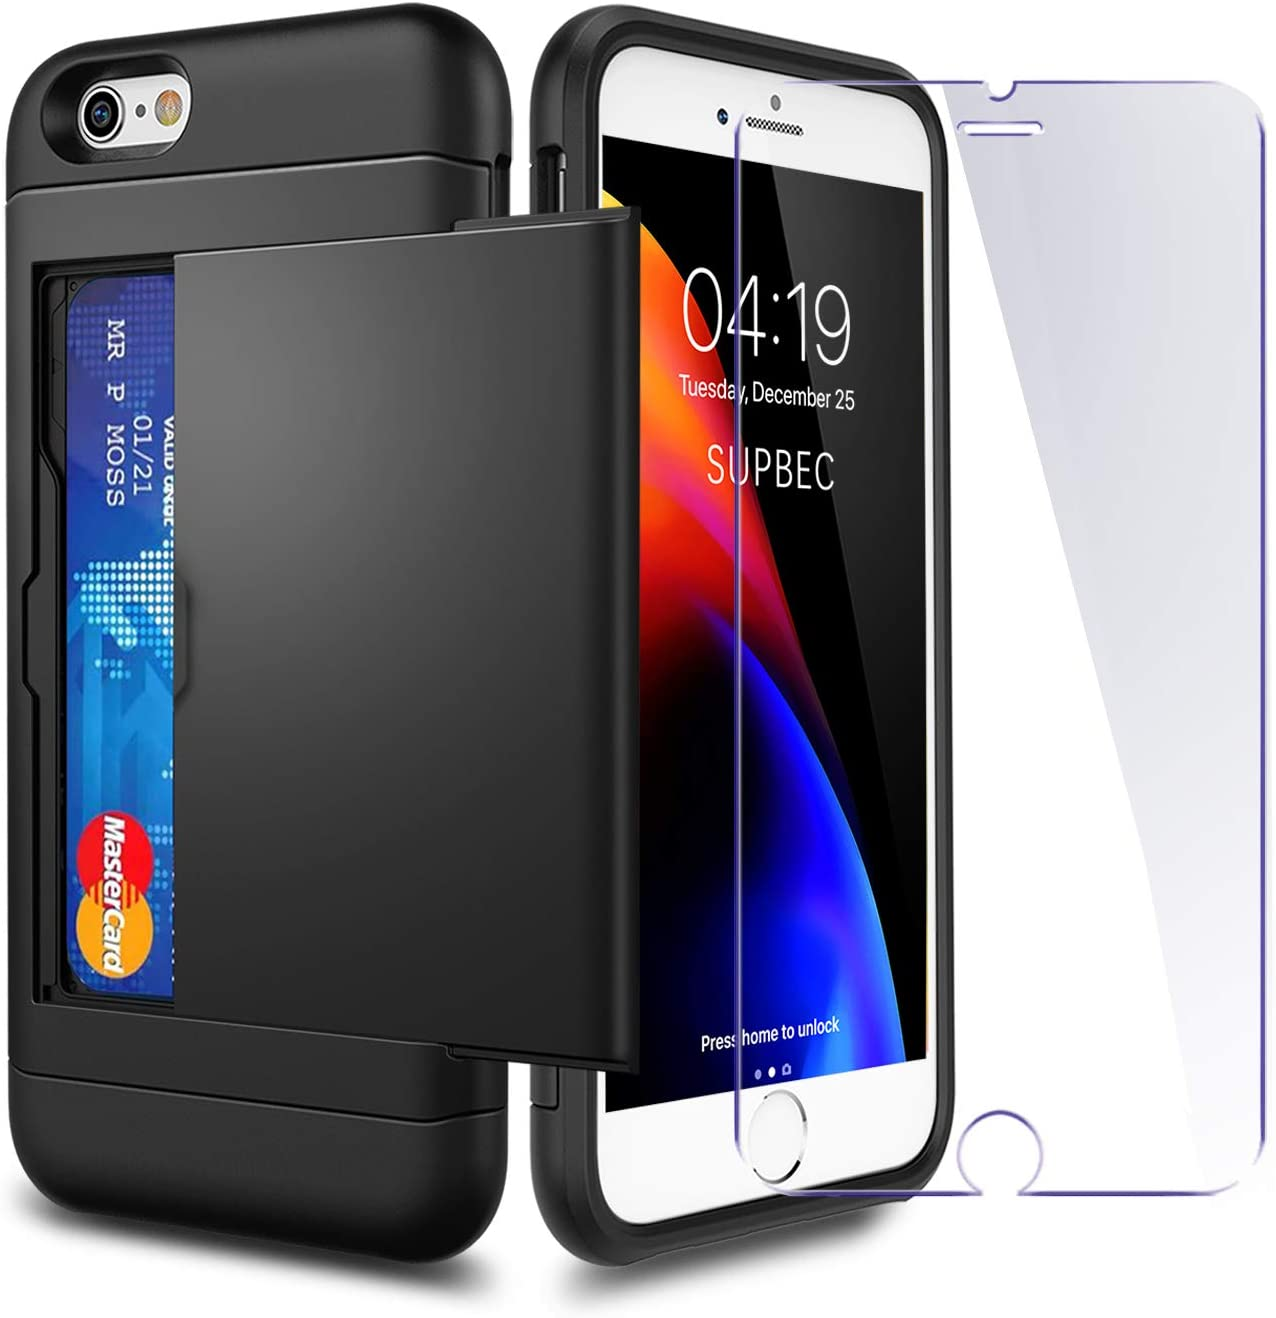 iPhone 7/8 / SE 2020 Case with Card Holder and[ Screen Protector Tempered Glass x2Pack] SUPBEC i Phone 7/8/SE 2 Wallet Case Cover with Shockproof Silicone TPU + Hard PC Full Protective-Black